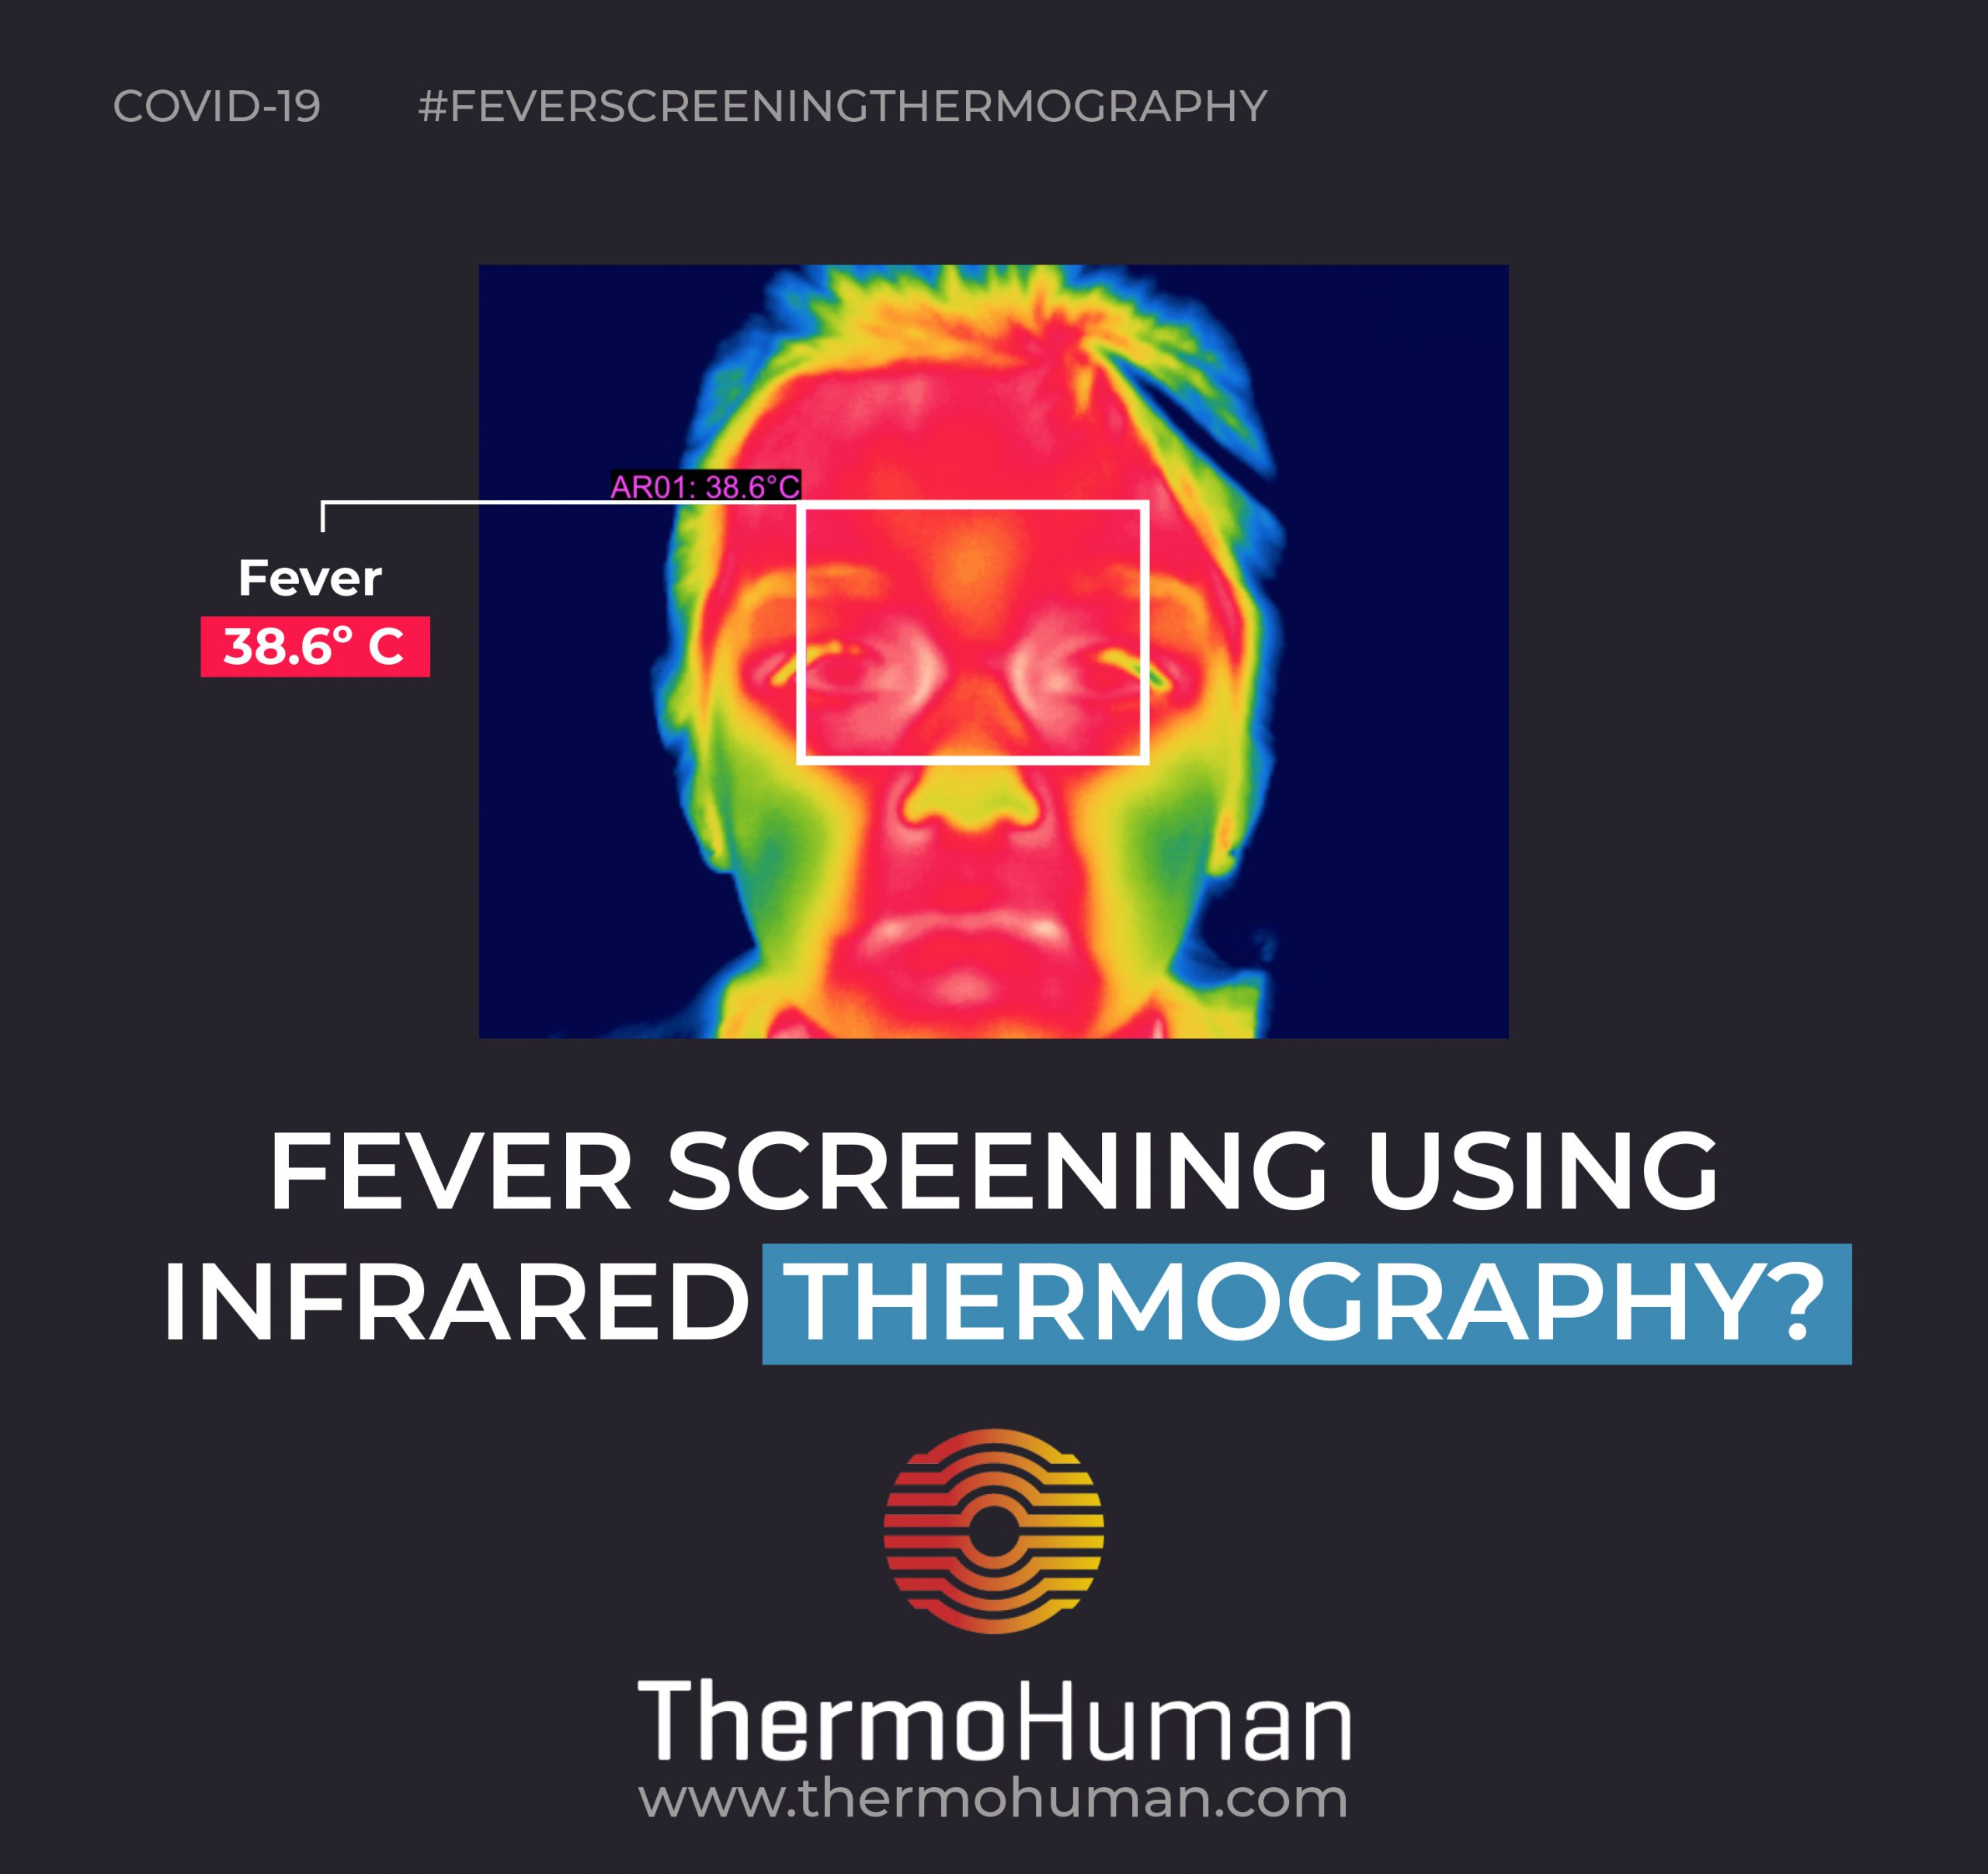 Fever screening using infrared thermography?